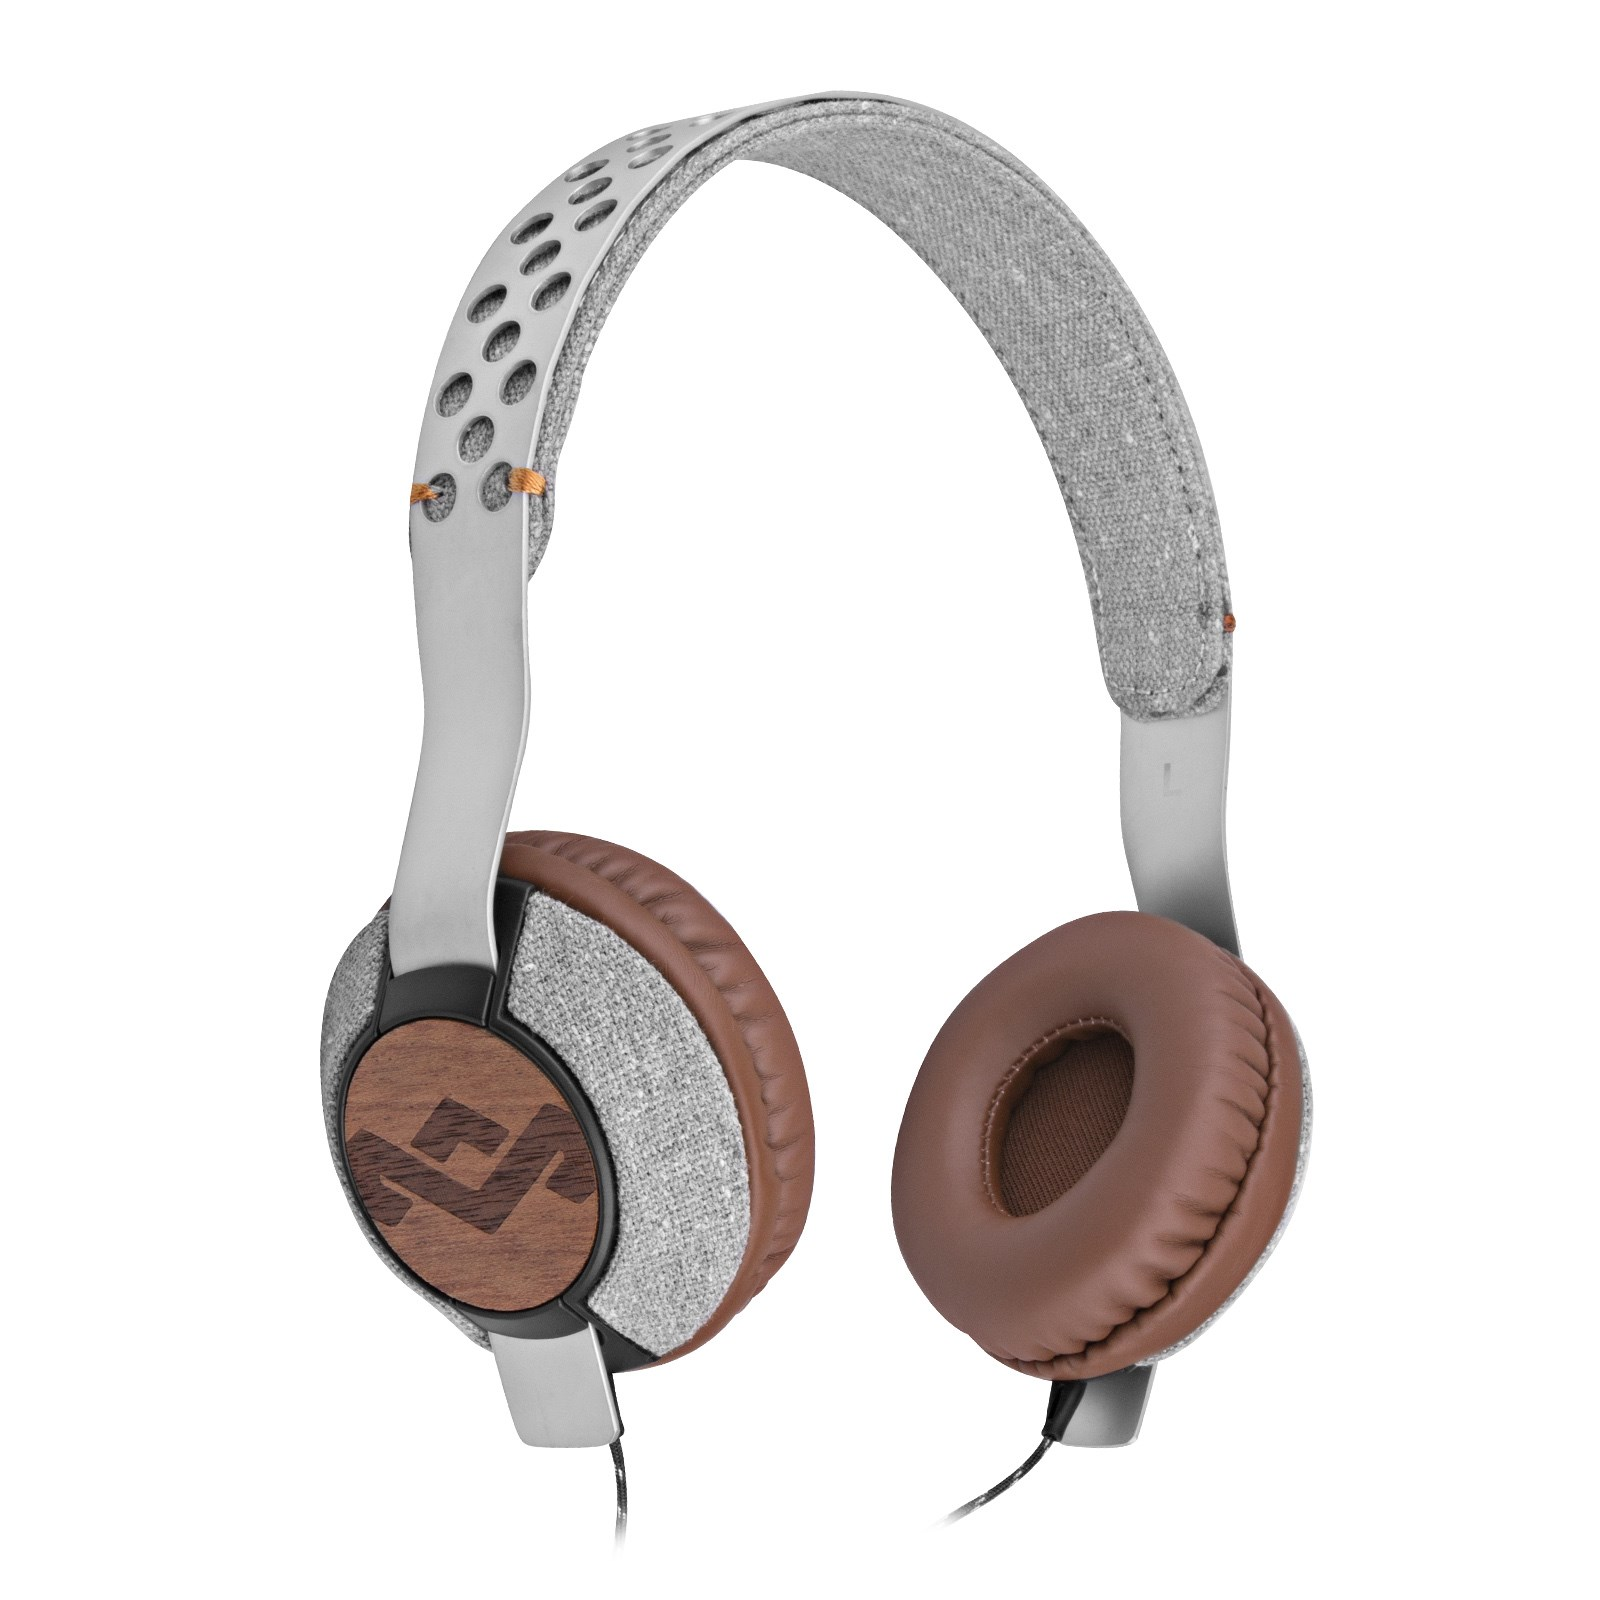 House of Marley EM-JH073-SD Liberate On Ear Headphones  - Saddle